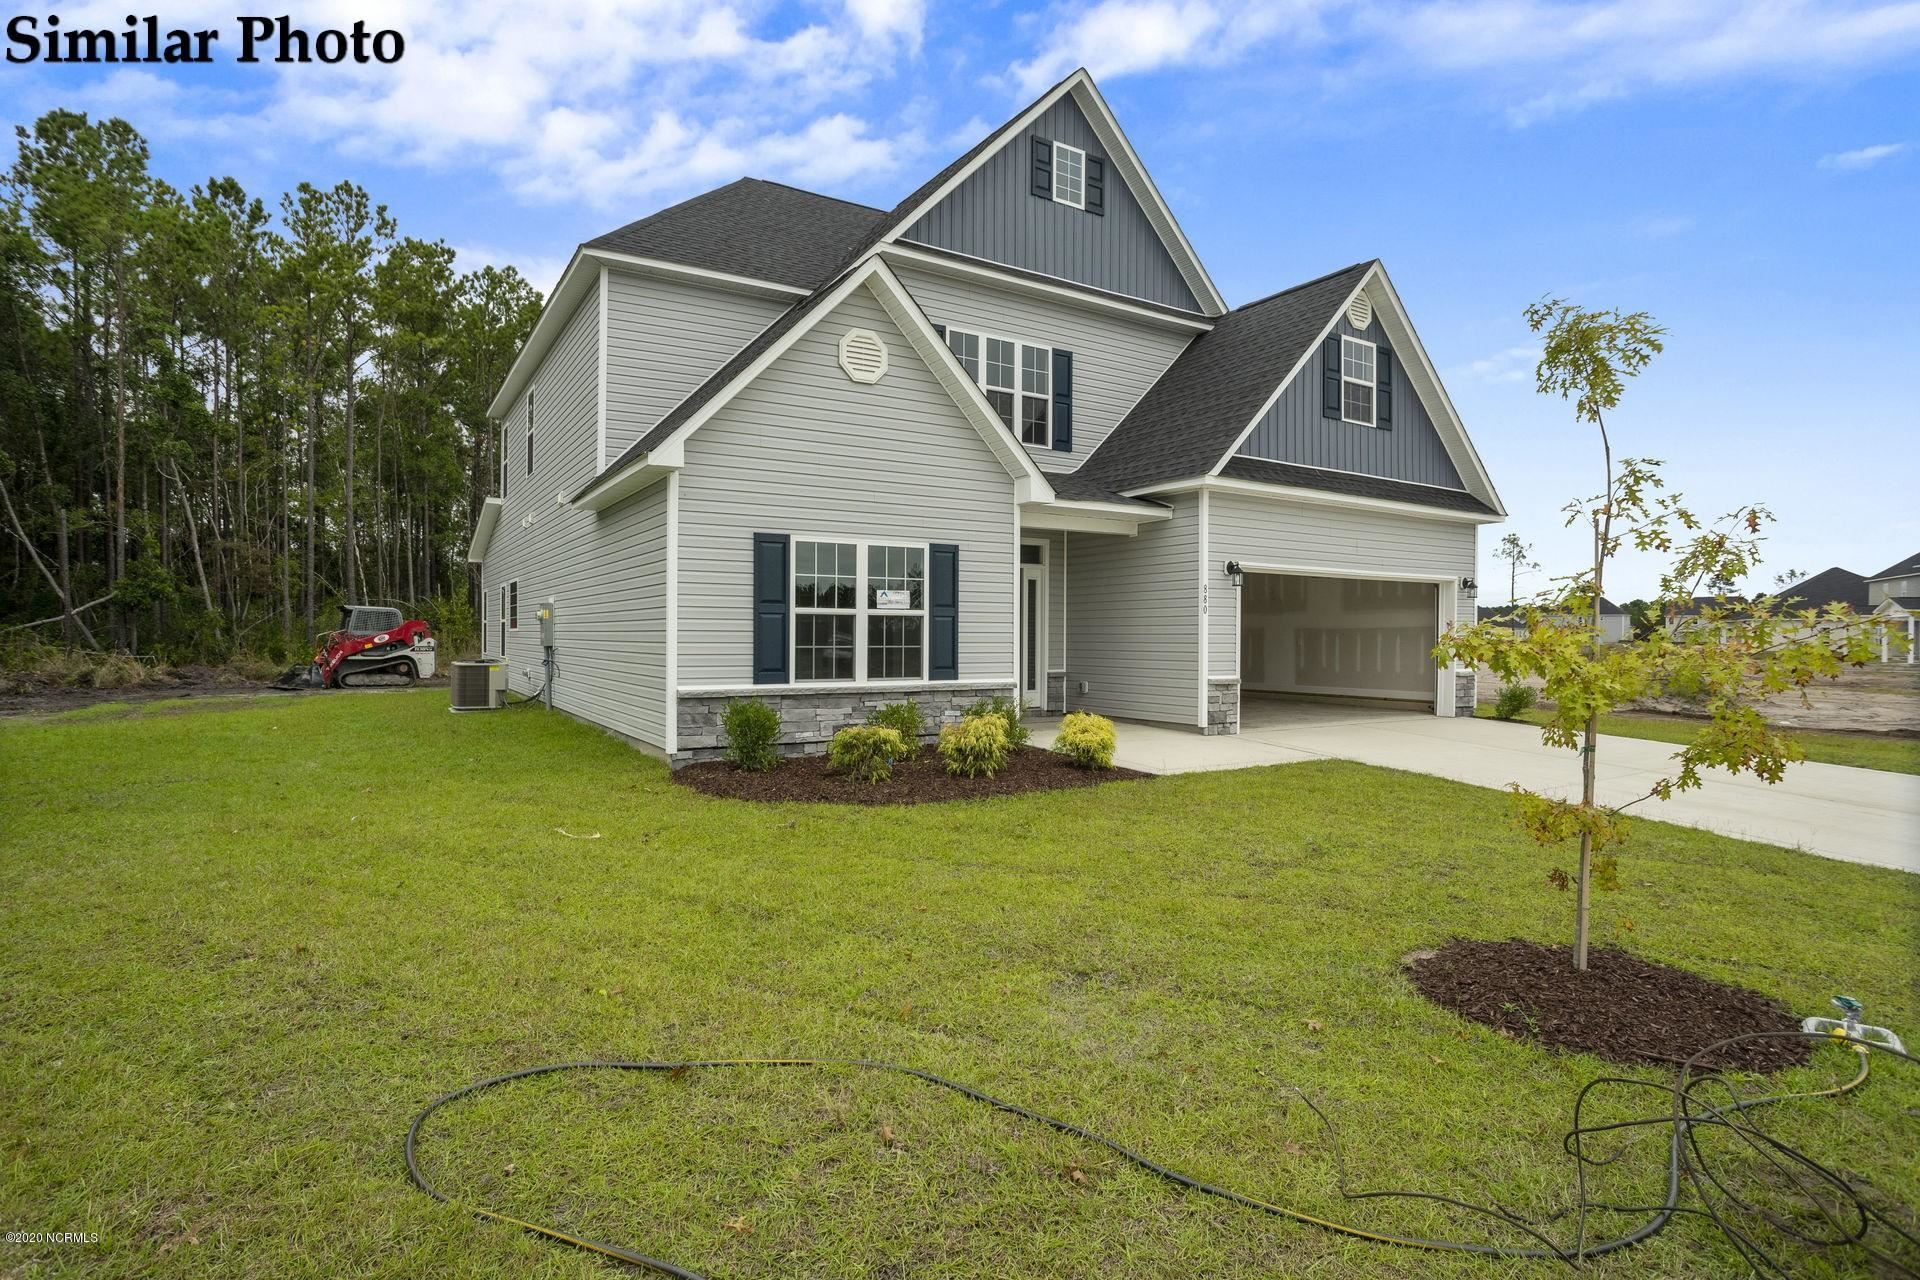 Photo of 509 Transom Way, Sneads Ferry, NC 28460 (MLS # 100252070)